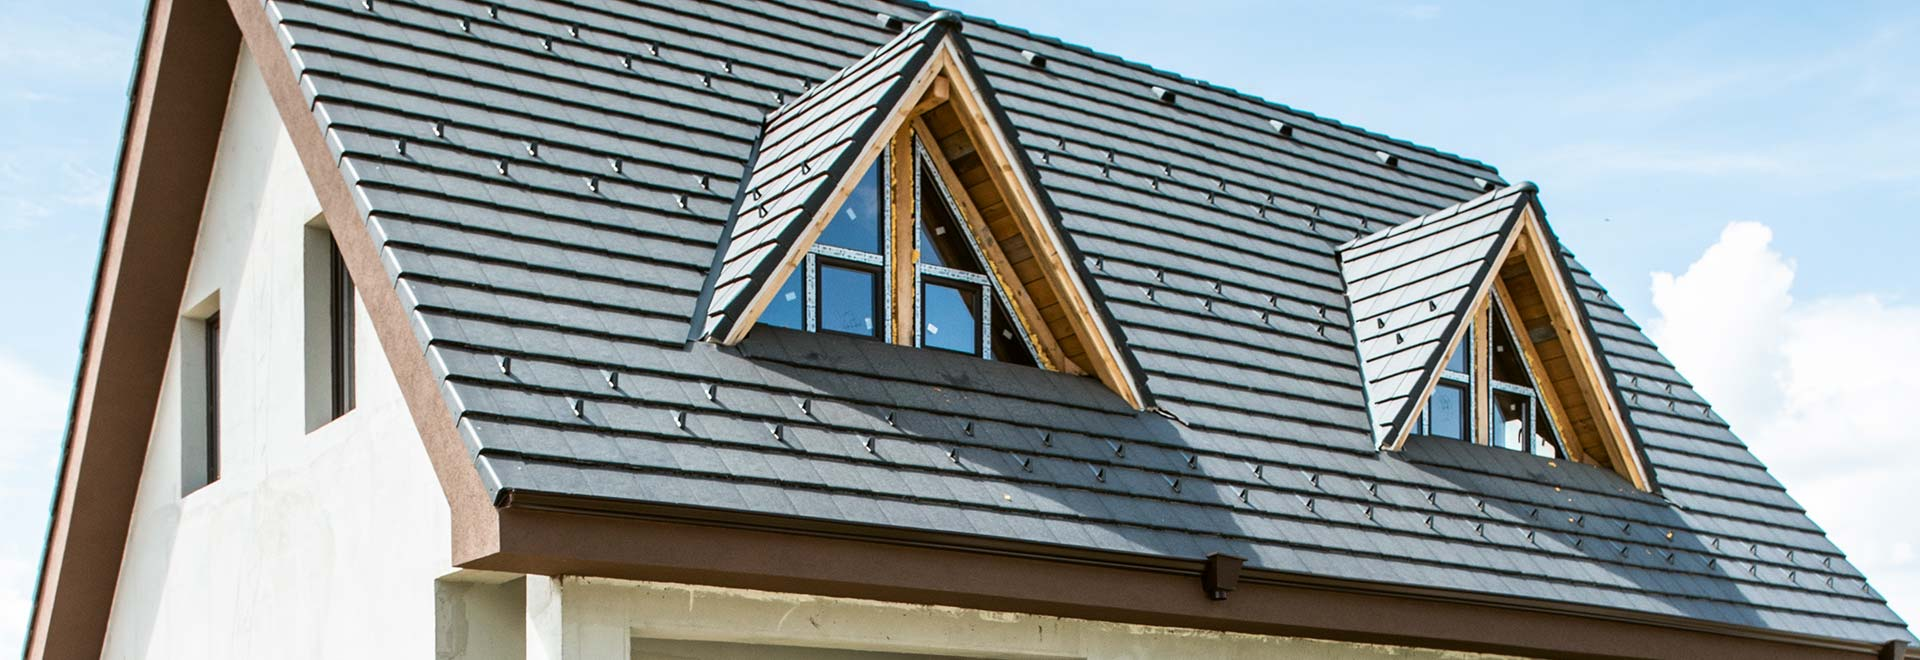 Residential Roofing Contractors in Frisco, TX